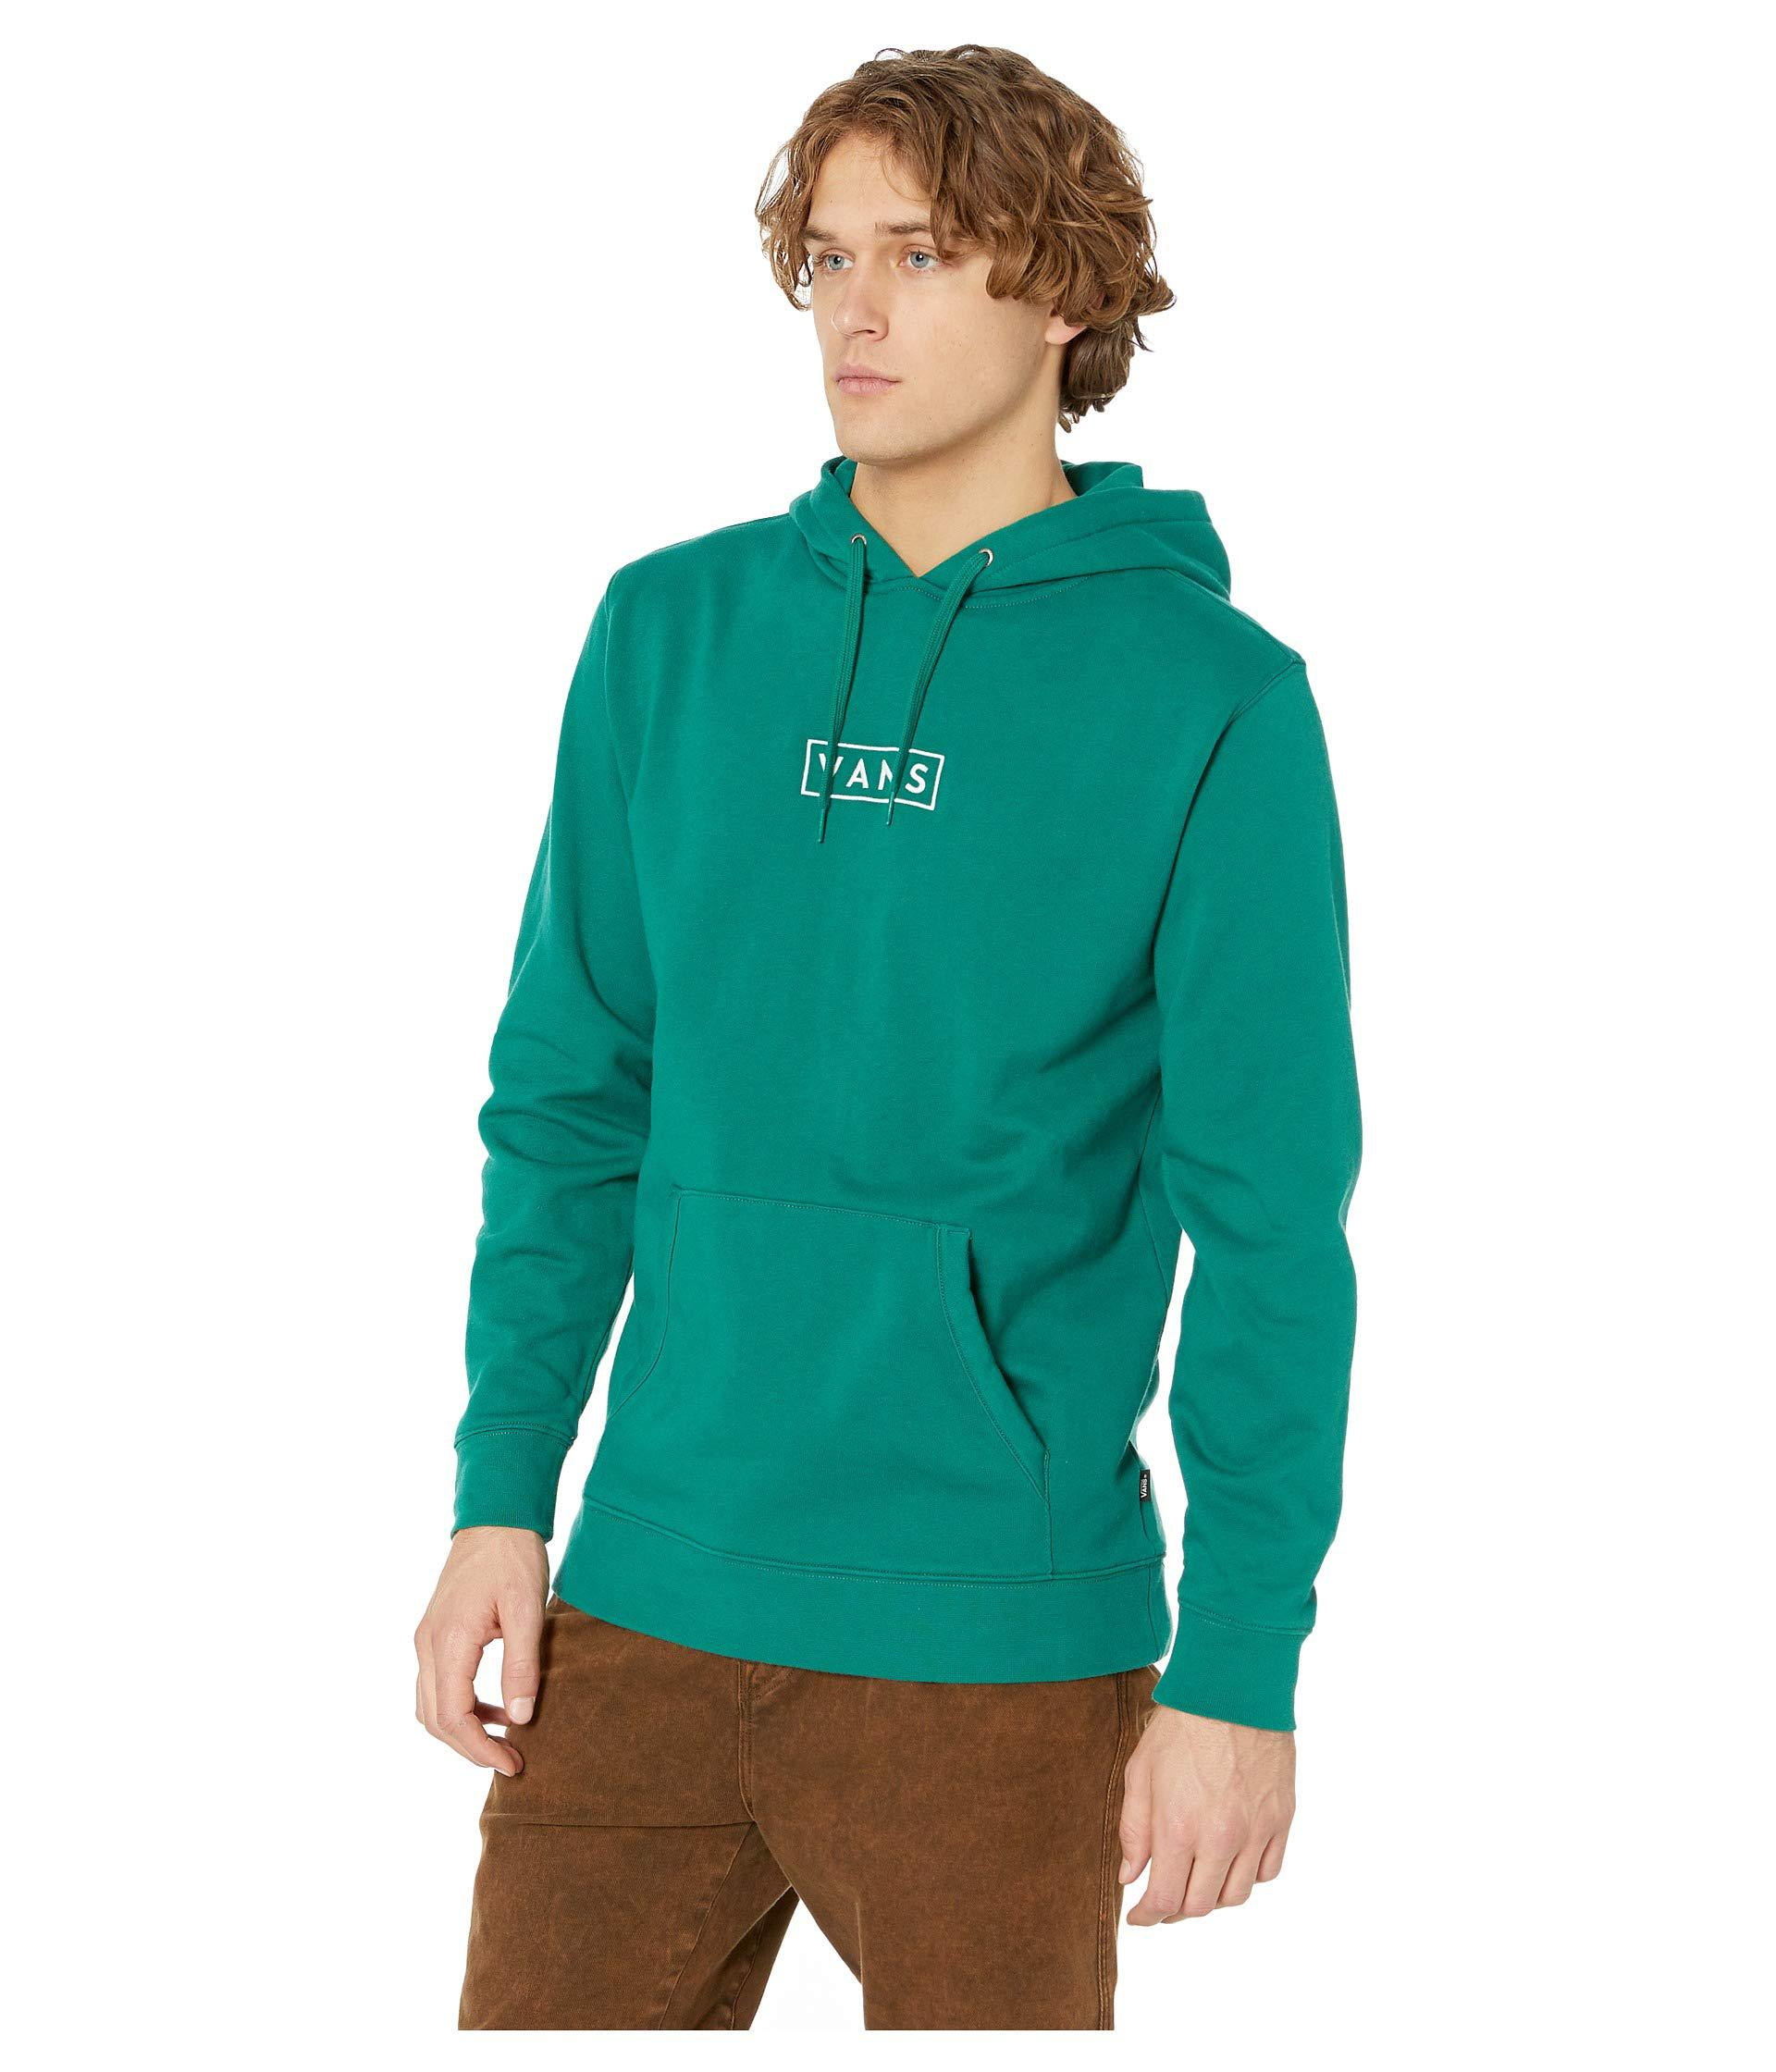 65a40fd2d68d74 Lyst - Vans Easy Box Pullover Fleece in Green for Men - Save 16%